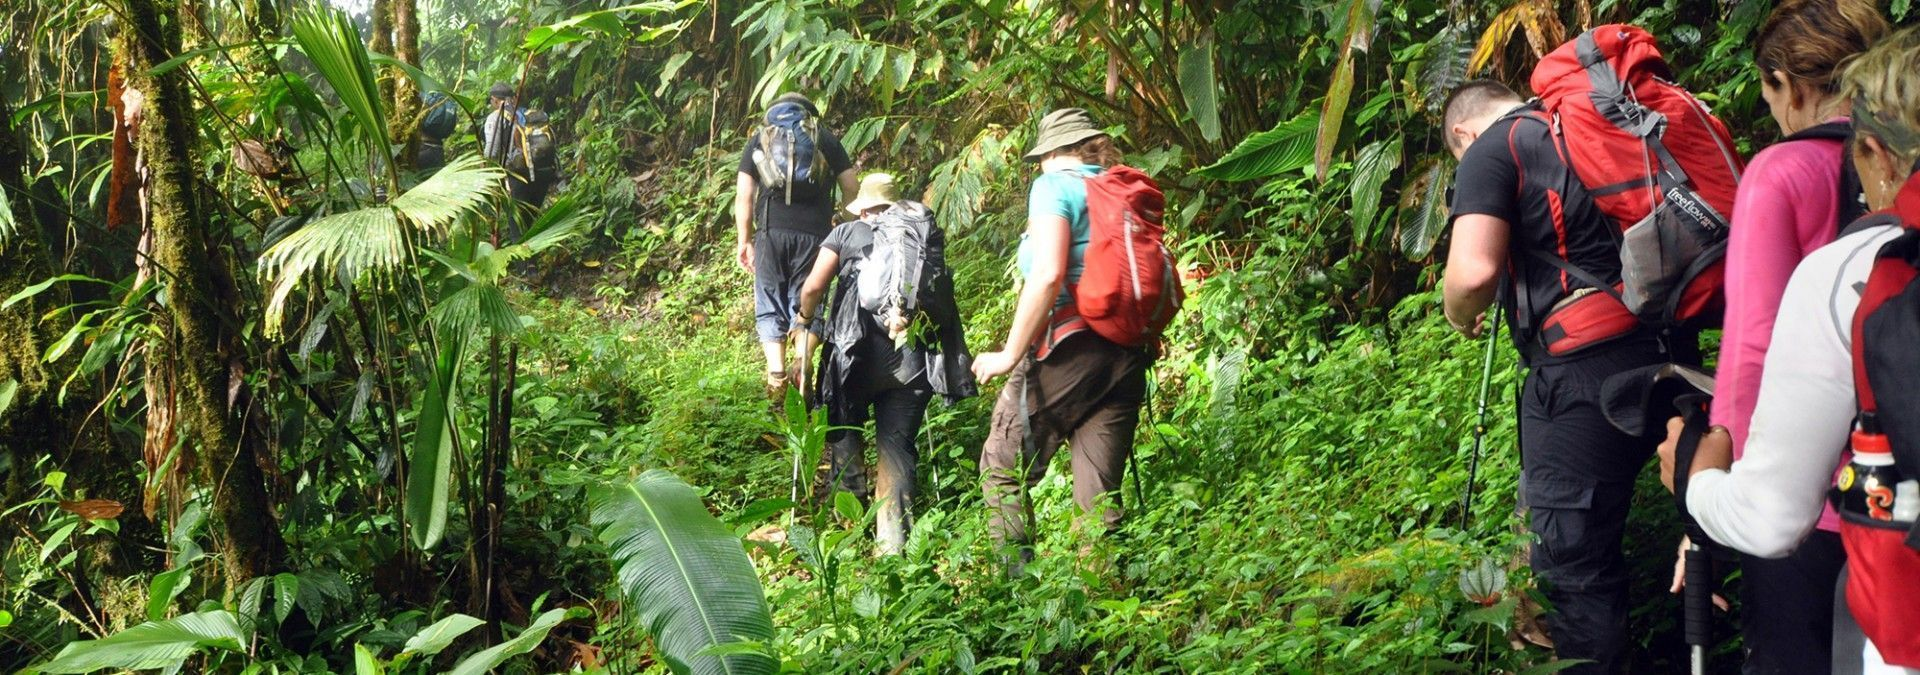 Trekking_through_jungle_Costa_Rica.jpg